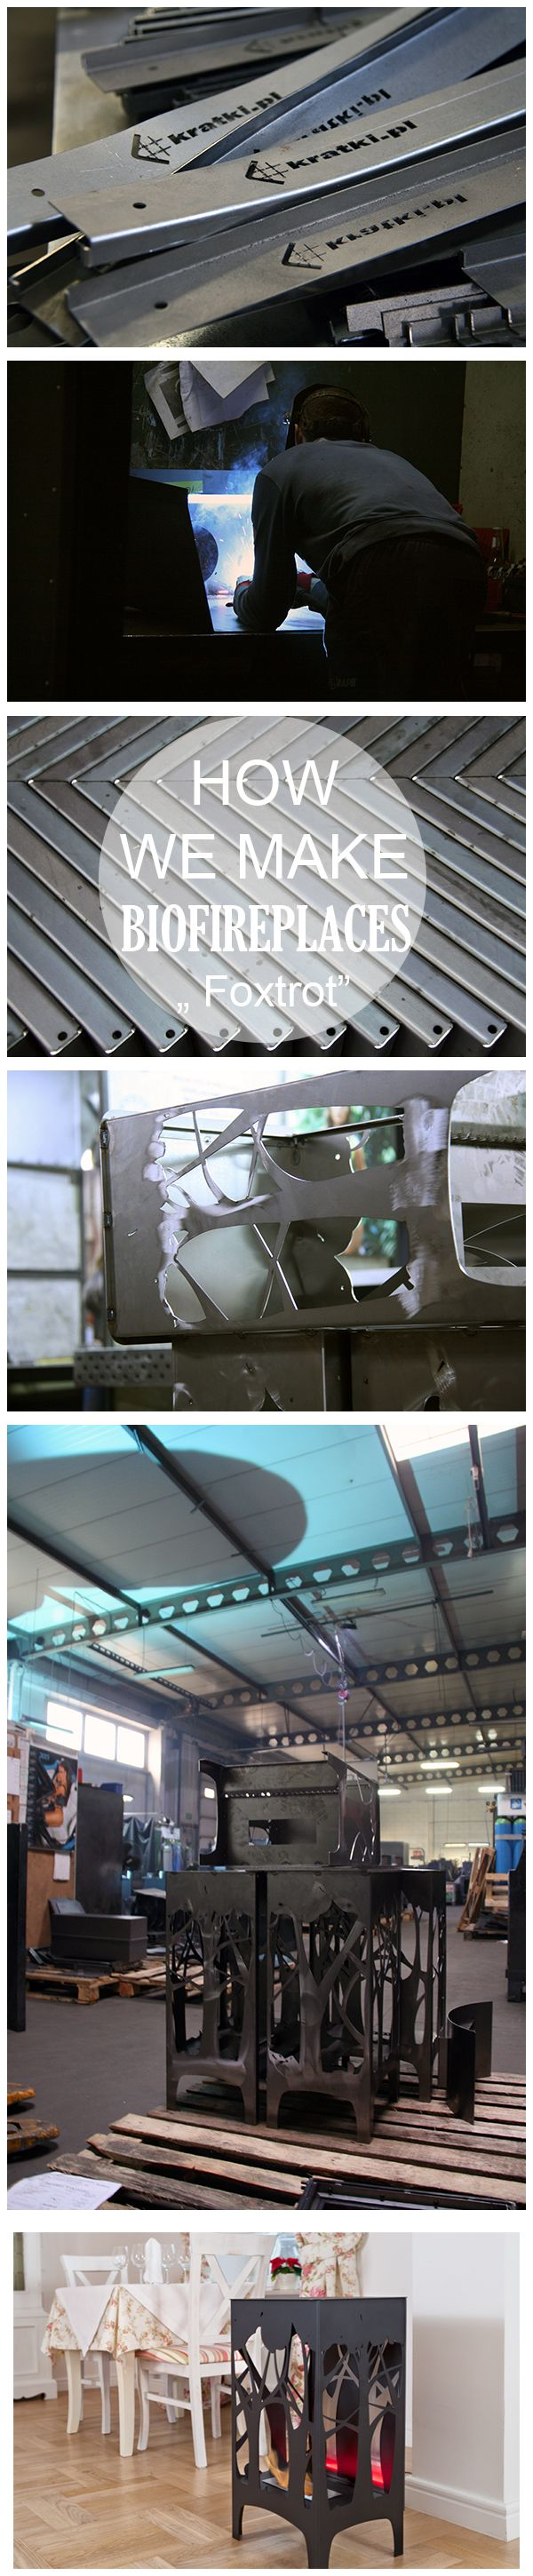 How we produce our bio fireplace? Take a look at production steps. Today we show FOXTROT.